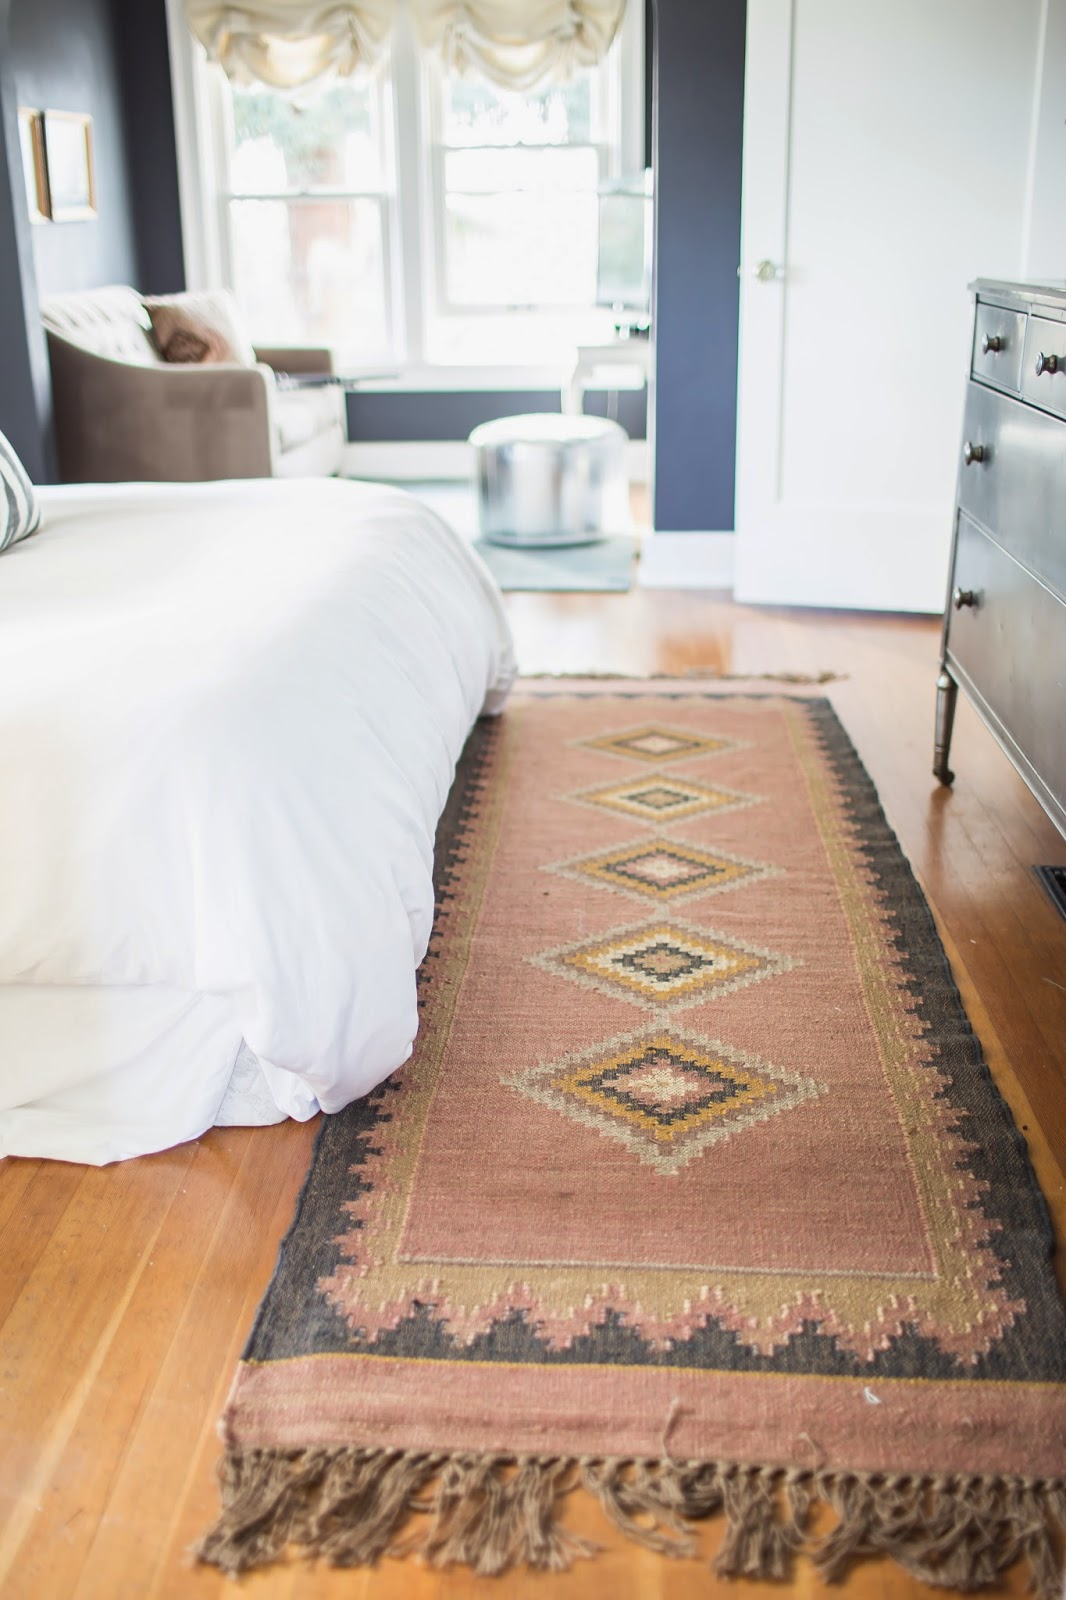 My sweet savannah a stylist 39 s fashionable home tour for Bedroom rugs